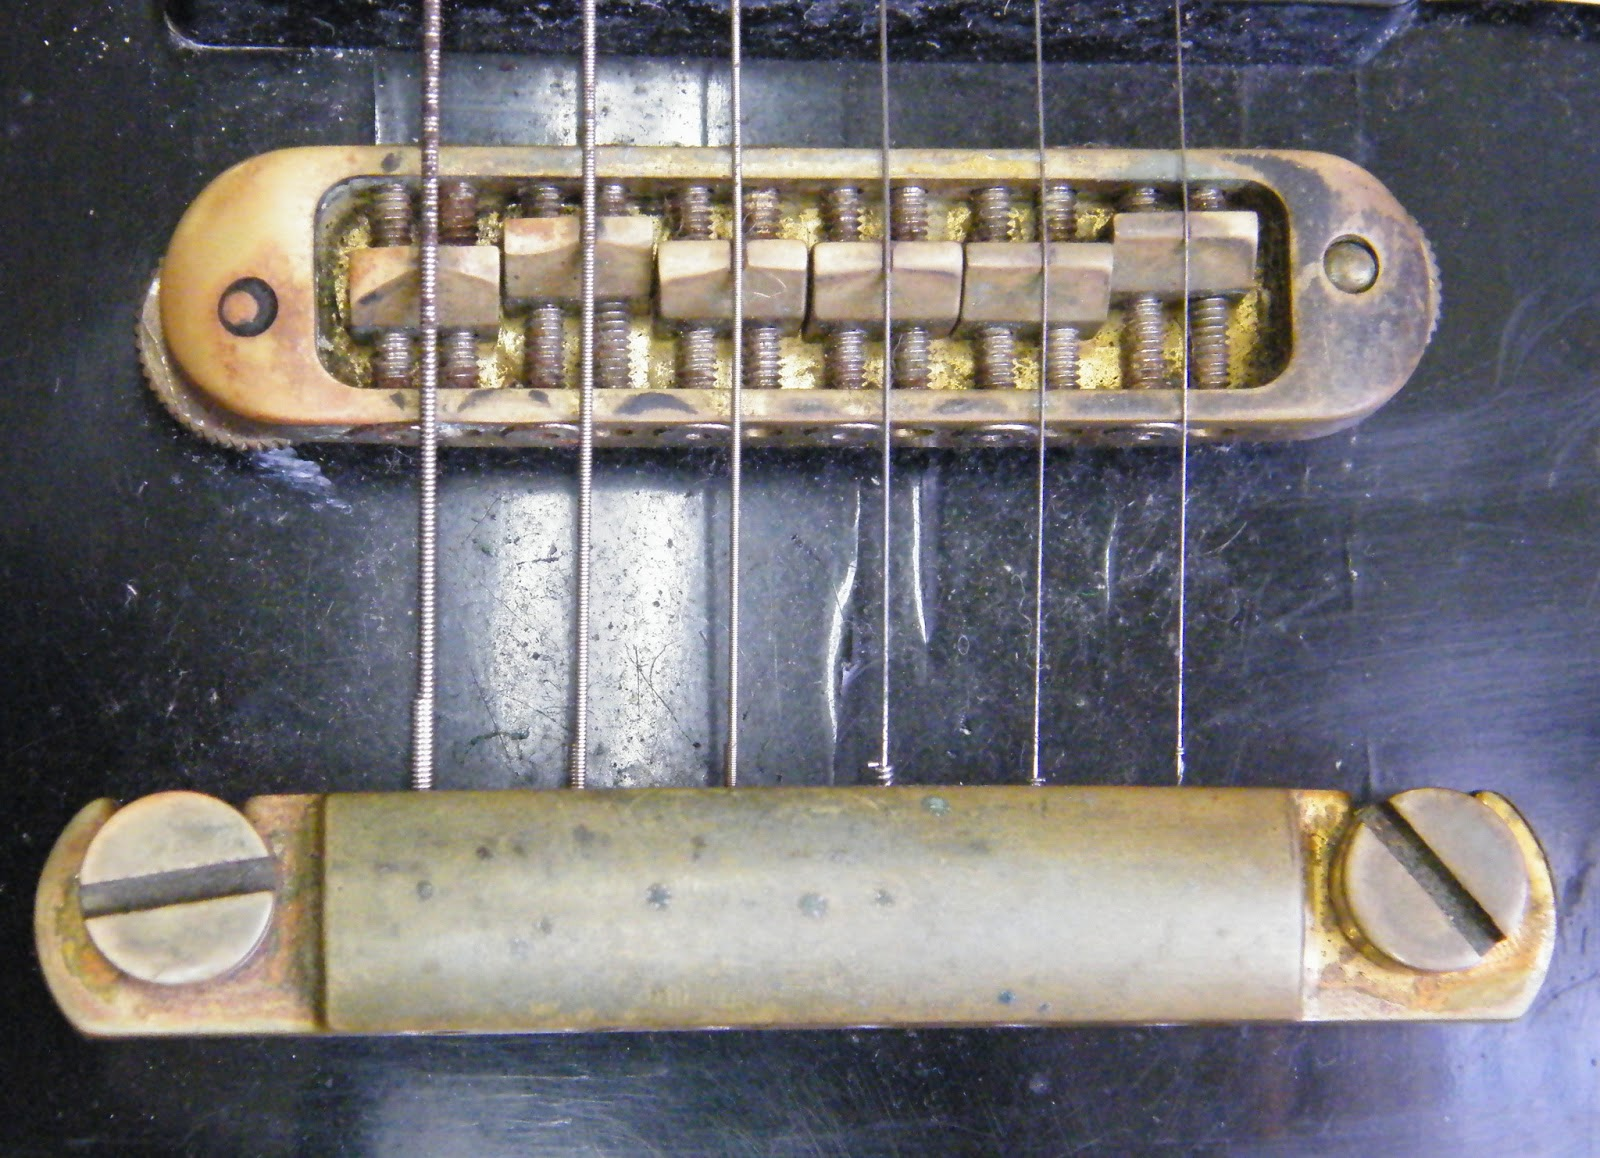 Mr Glyns Guitar Repair Les Paul 79 Refret With A Difference 3 Way Switch Problem Both Bridge And Tailpiece Have Been Changed To Very Solid Brass Ones The Customer Tells Me He Was Sick Of Fitting New Gibson Bridges Only Them Sag